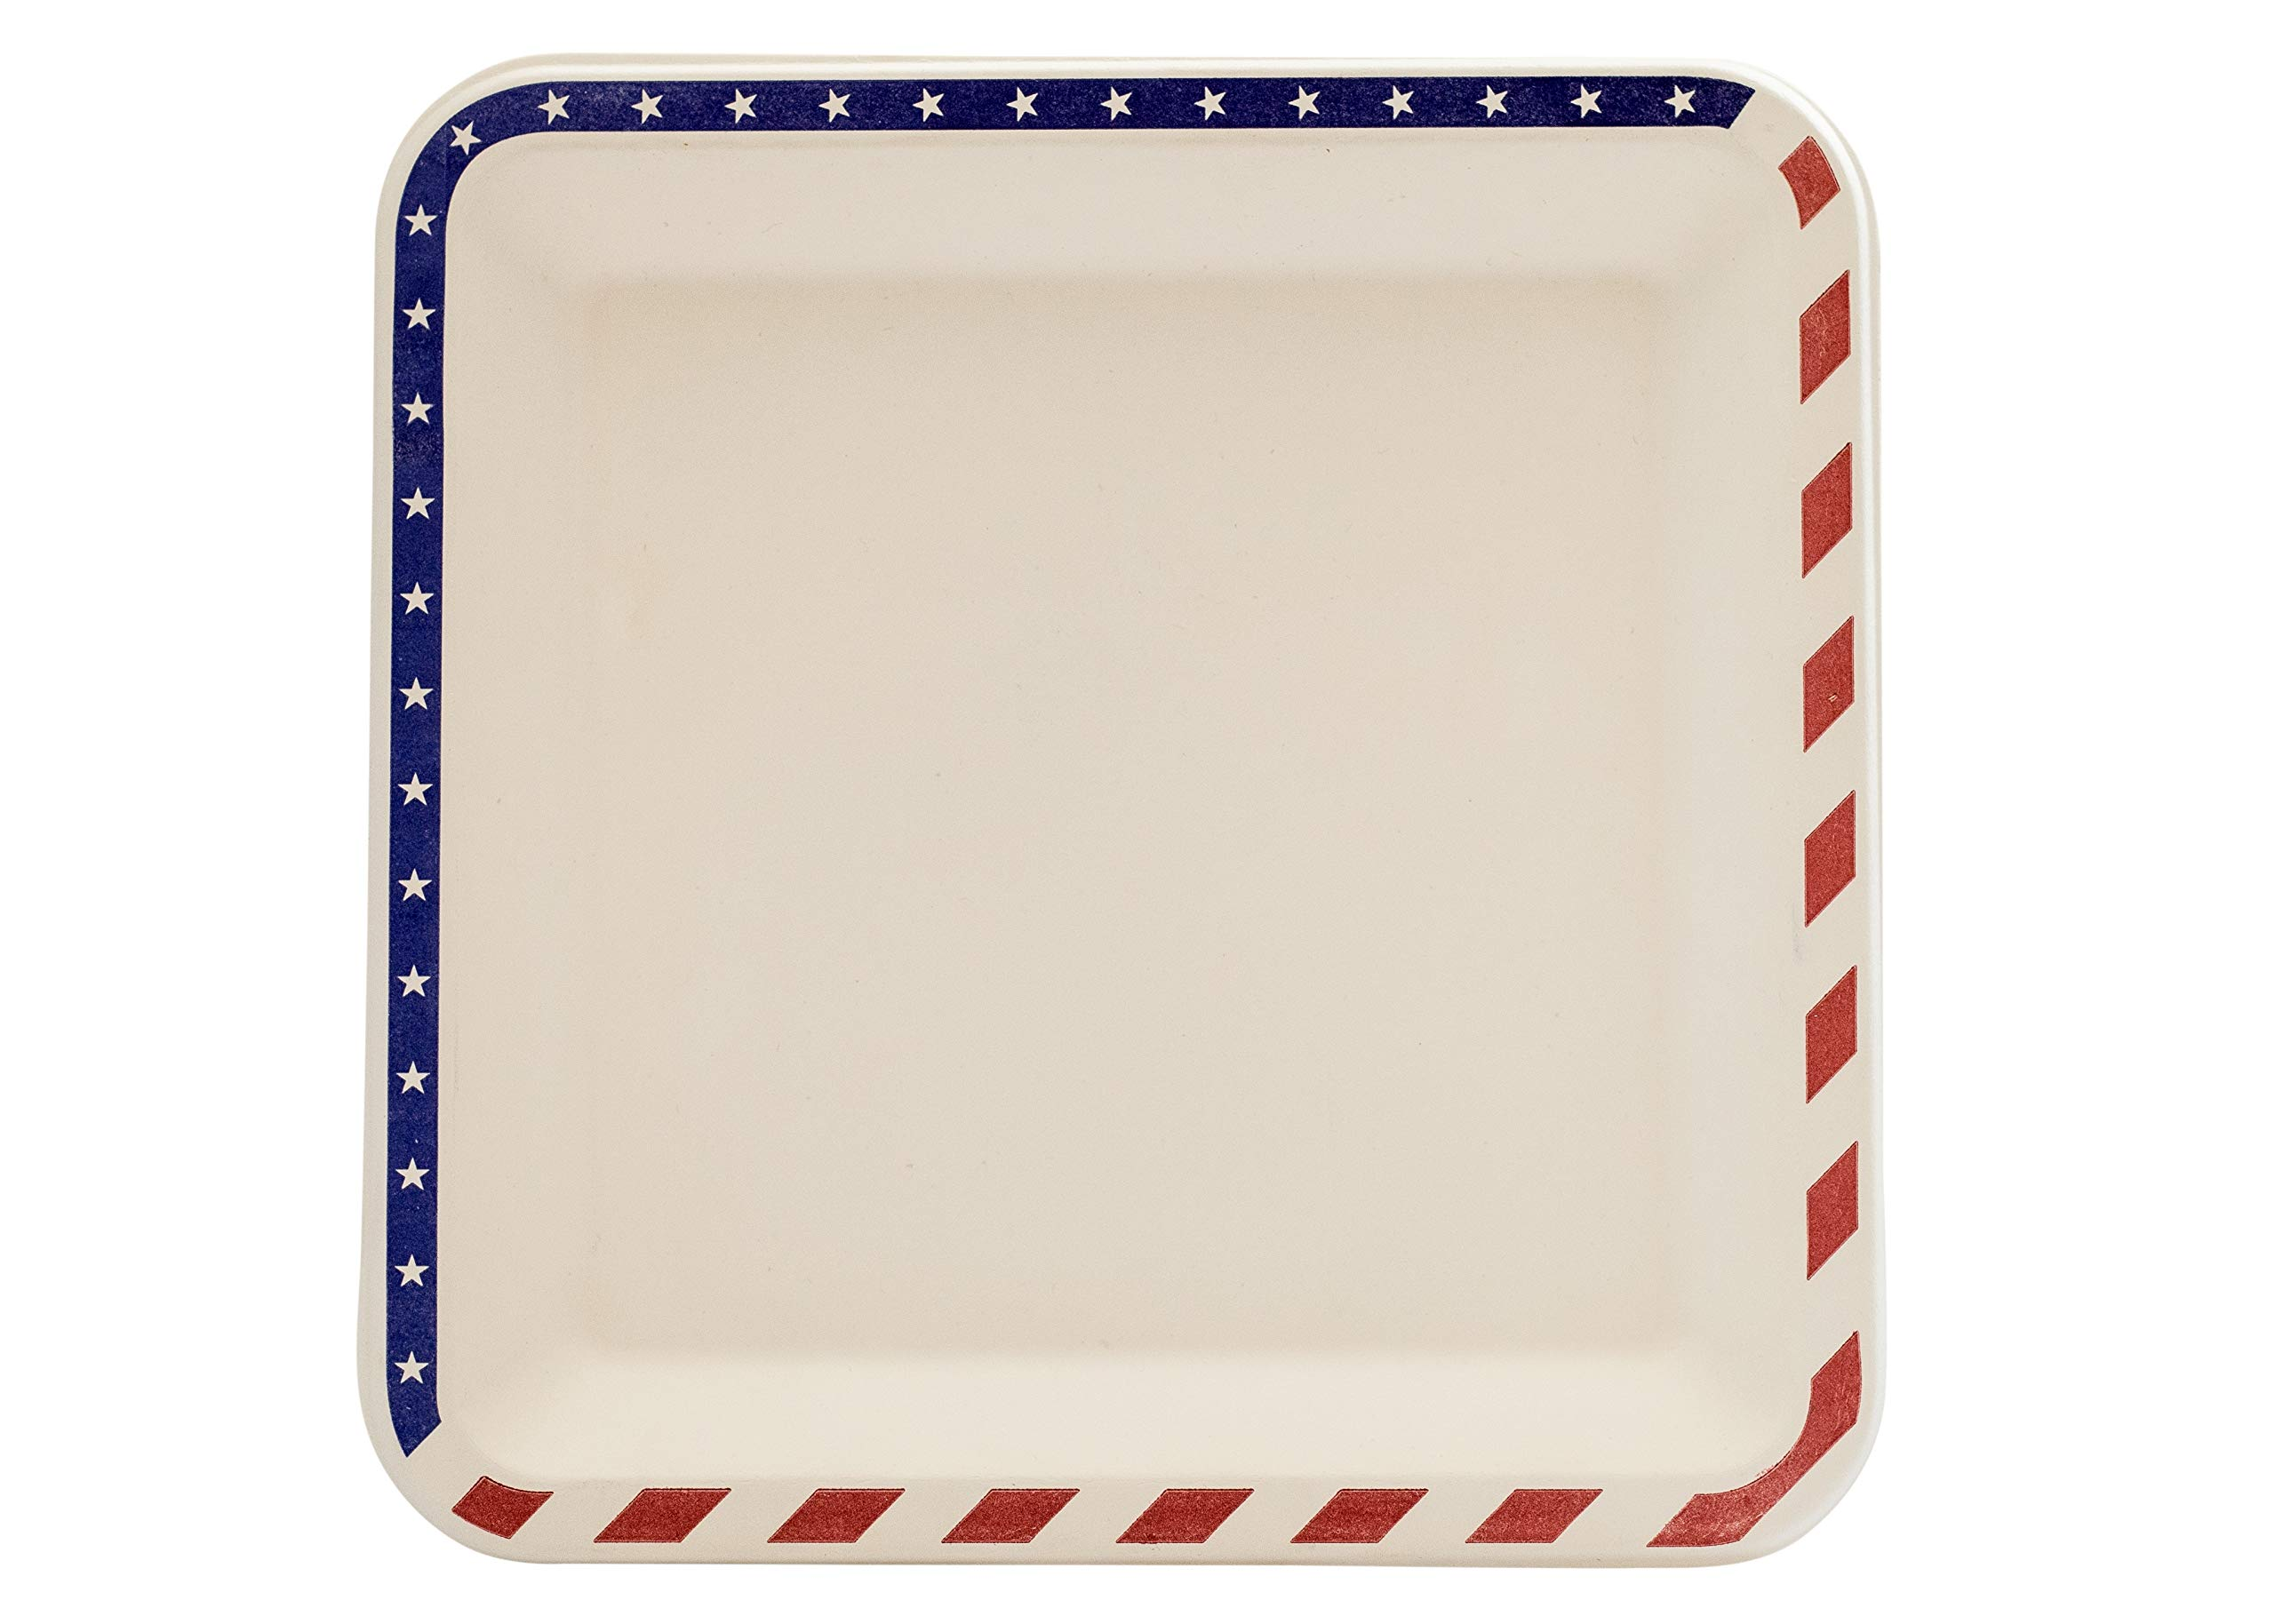 """[100 COUNT] 9.5"""" inches American Flag Contemporary Bagasse Eco Disposable Plates Natural Sugarcane Fibers Compostable Environmental Friendly Paper Plastic Alternative 100% by-product (Red/White/Blue)"""